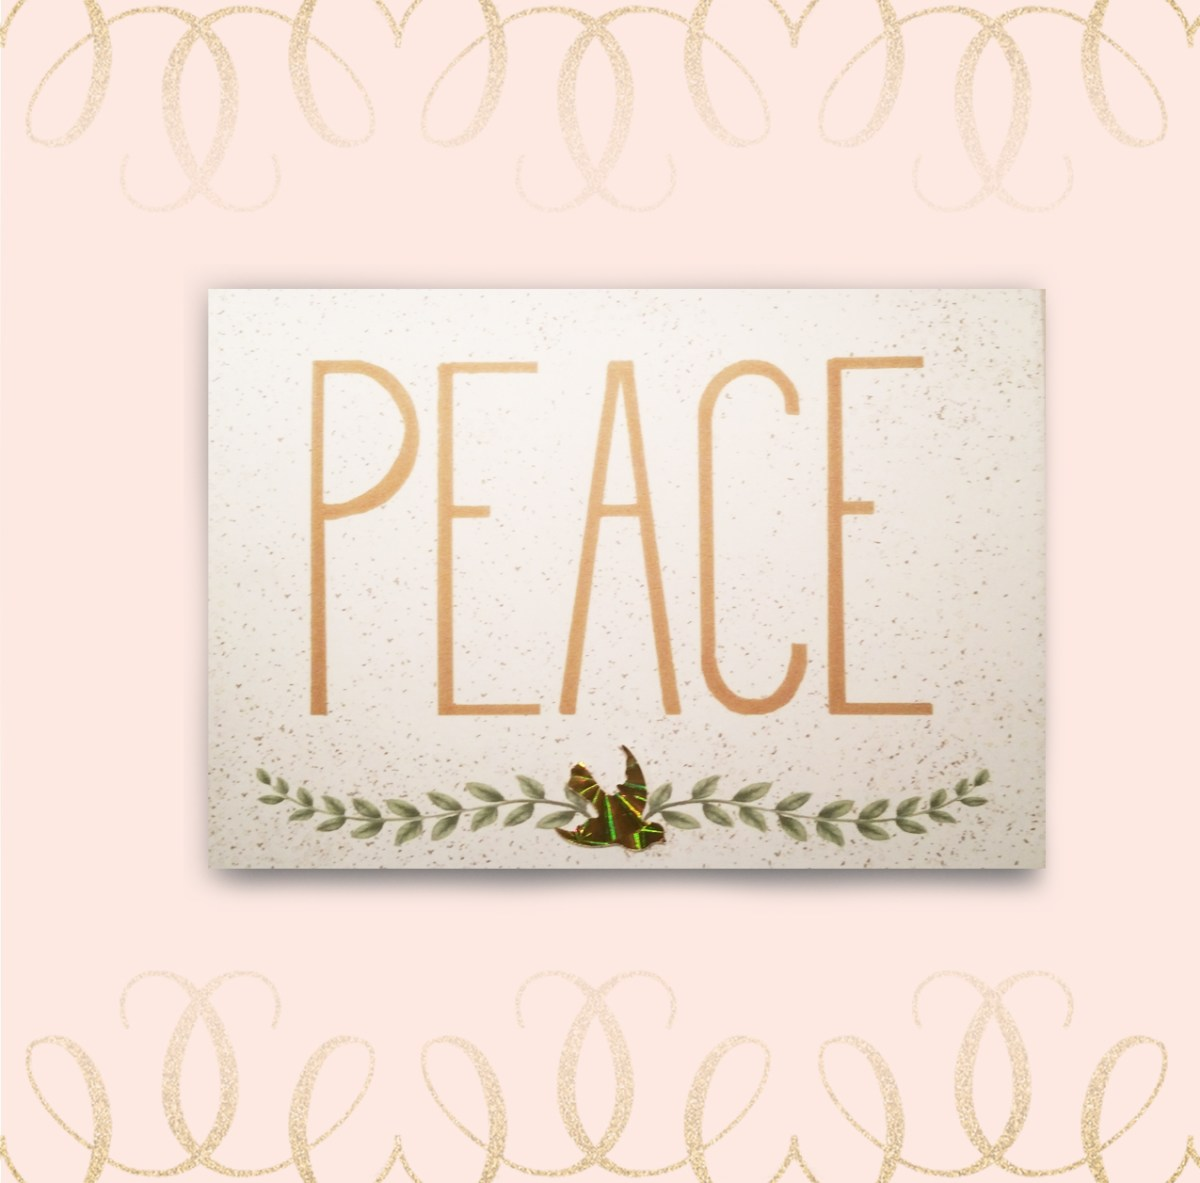 Peace on Earth, A Christmas Card For All